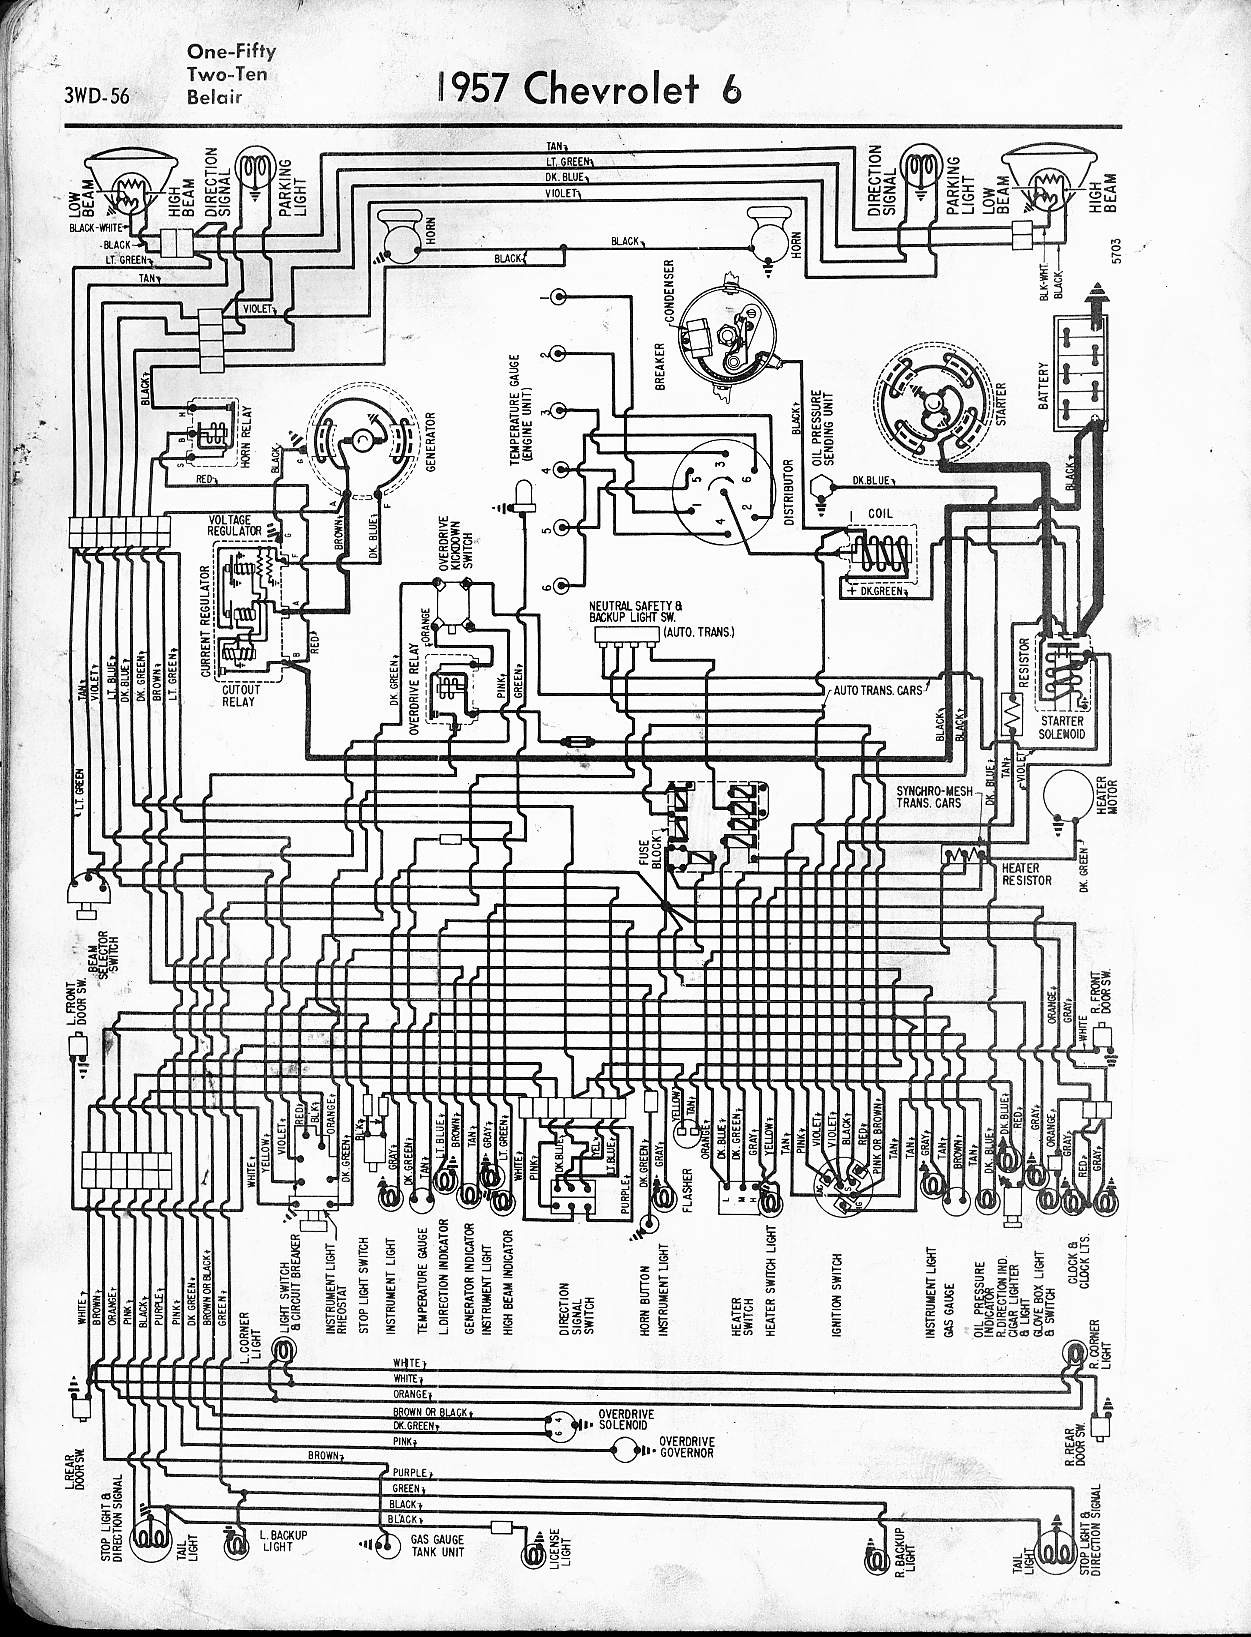 1962 Chevy Truck Wiring Diagram 57 65 Chevy Wiring Diagrams – My on 1962 chevy parts, 1962 chevy frame, 1962 chevy wiper motor, 1962 chevy transmission, 1962 chevy shop manual, 1962 chevy ignition switch, 1962 chevy power steering, 1962 chevy water pump, 1962 chevy clock, 1962 chevy antenna, 1962 chevy headlight switch, 1962 chevy generator, 1962 chevy engine, generator transfer switch diagram, 1962 chevy heater, 1962 chevy electric diagramn,